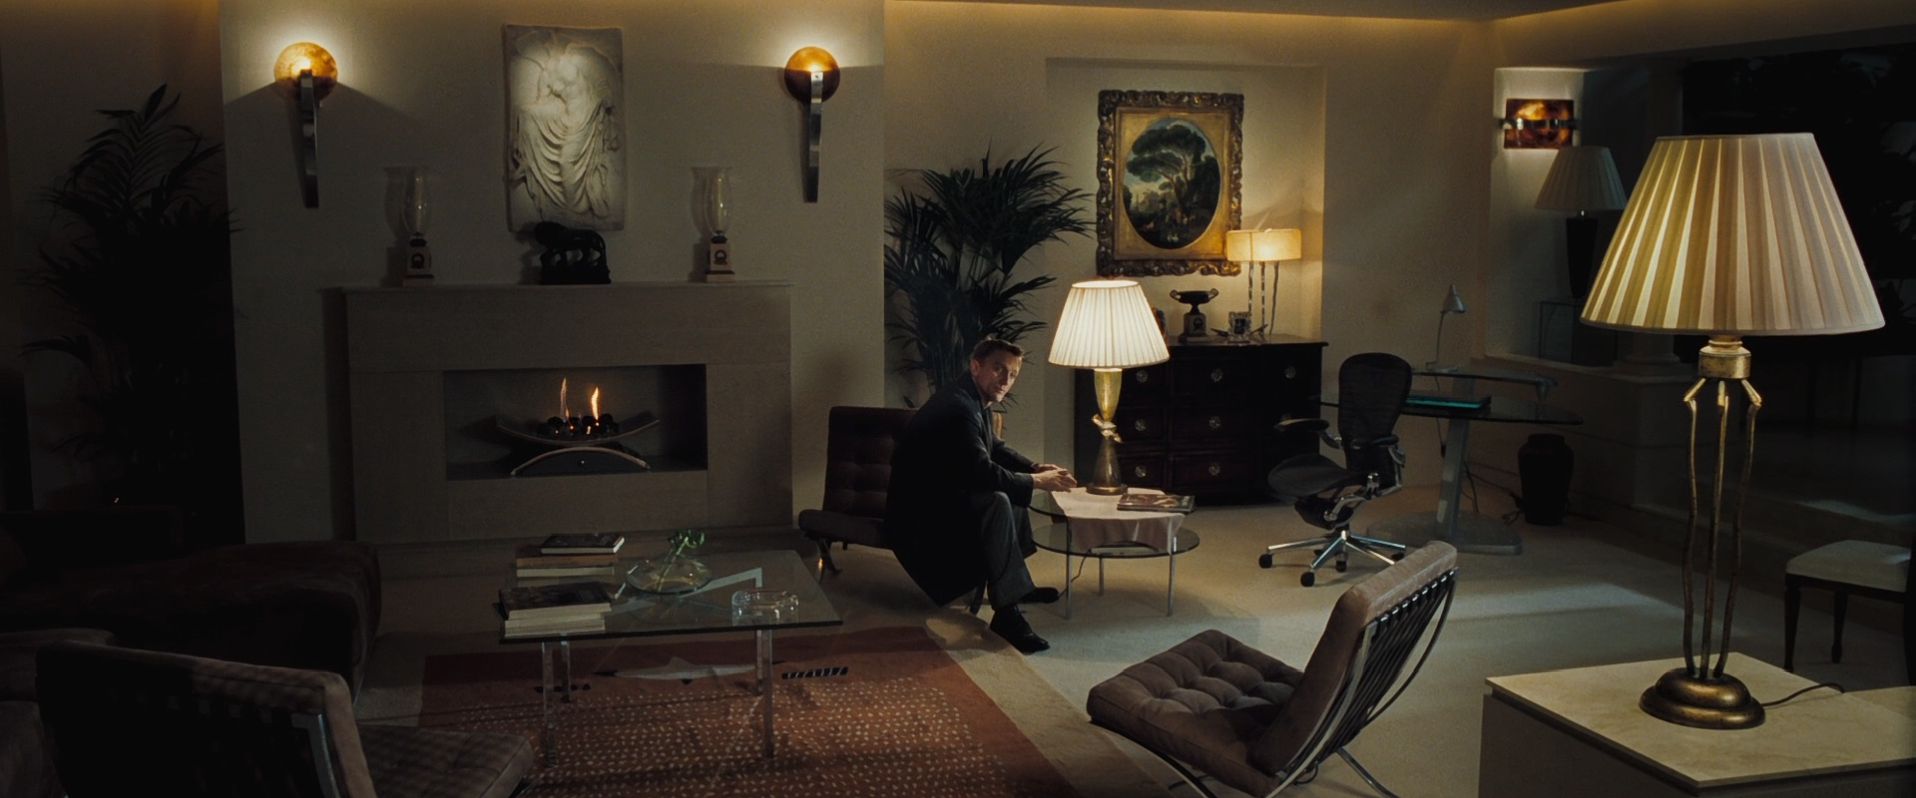 James Bond Interiors